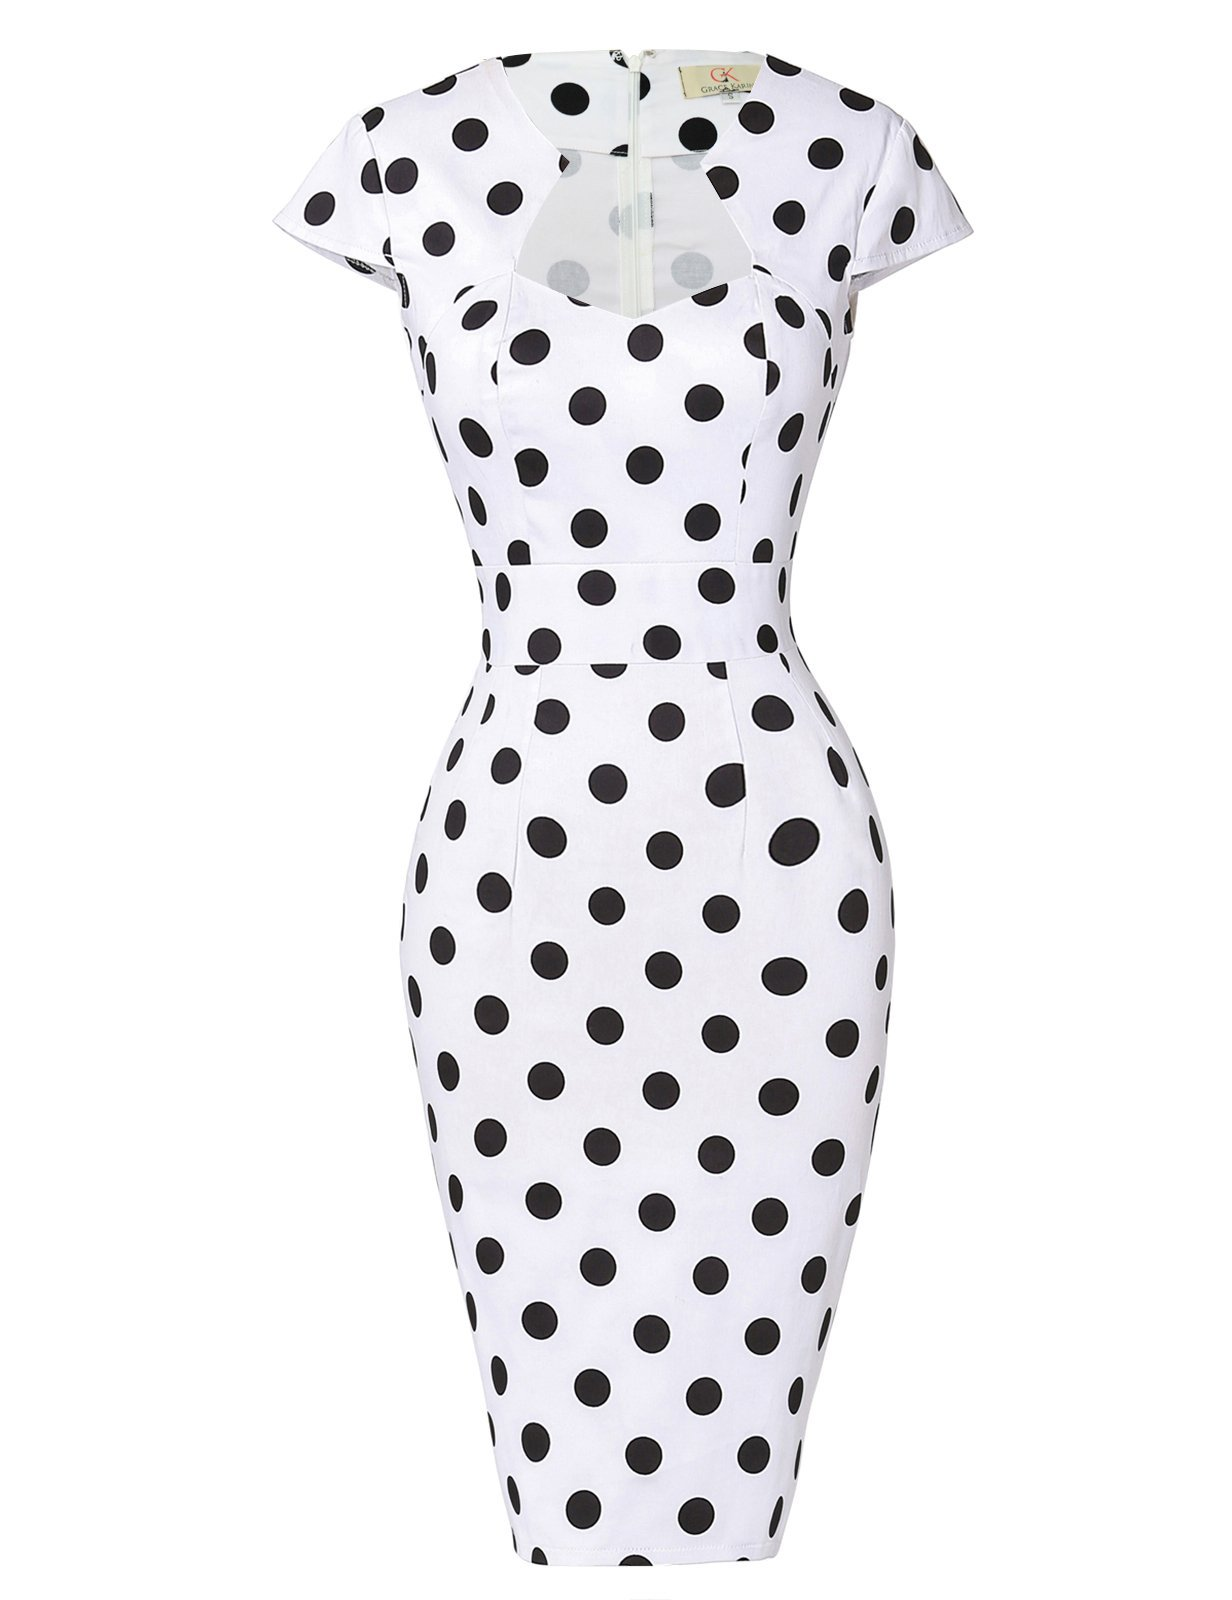 Polka Dots Vintage Ball Prom Dress Cap Sleeve White S CL7597-1